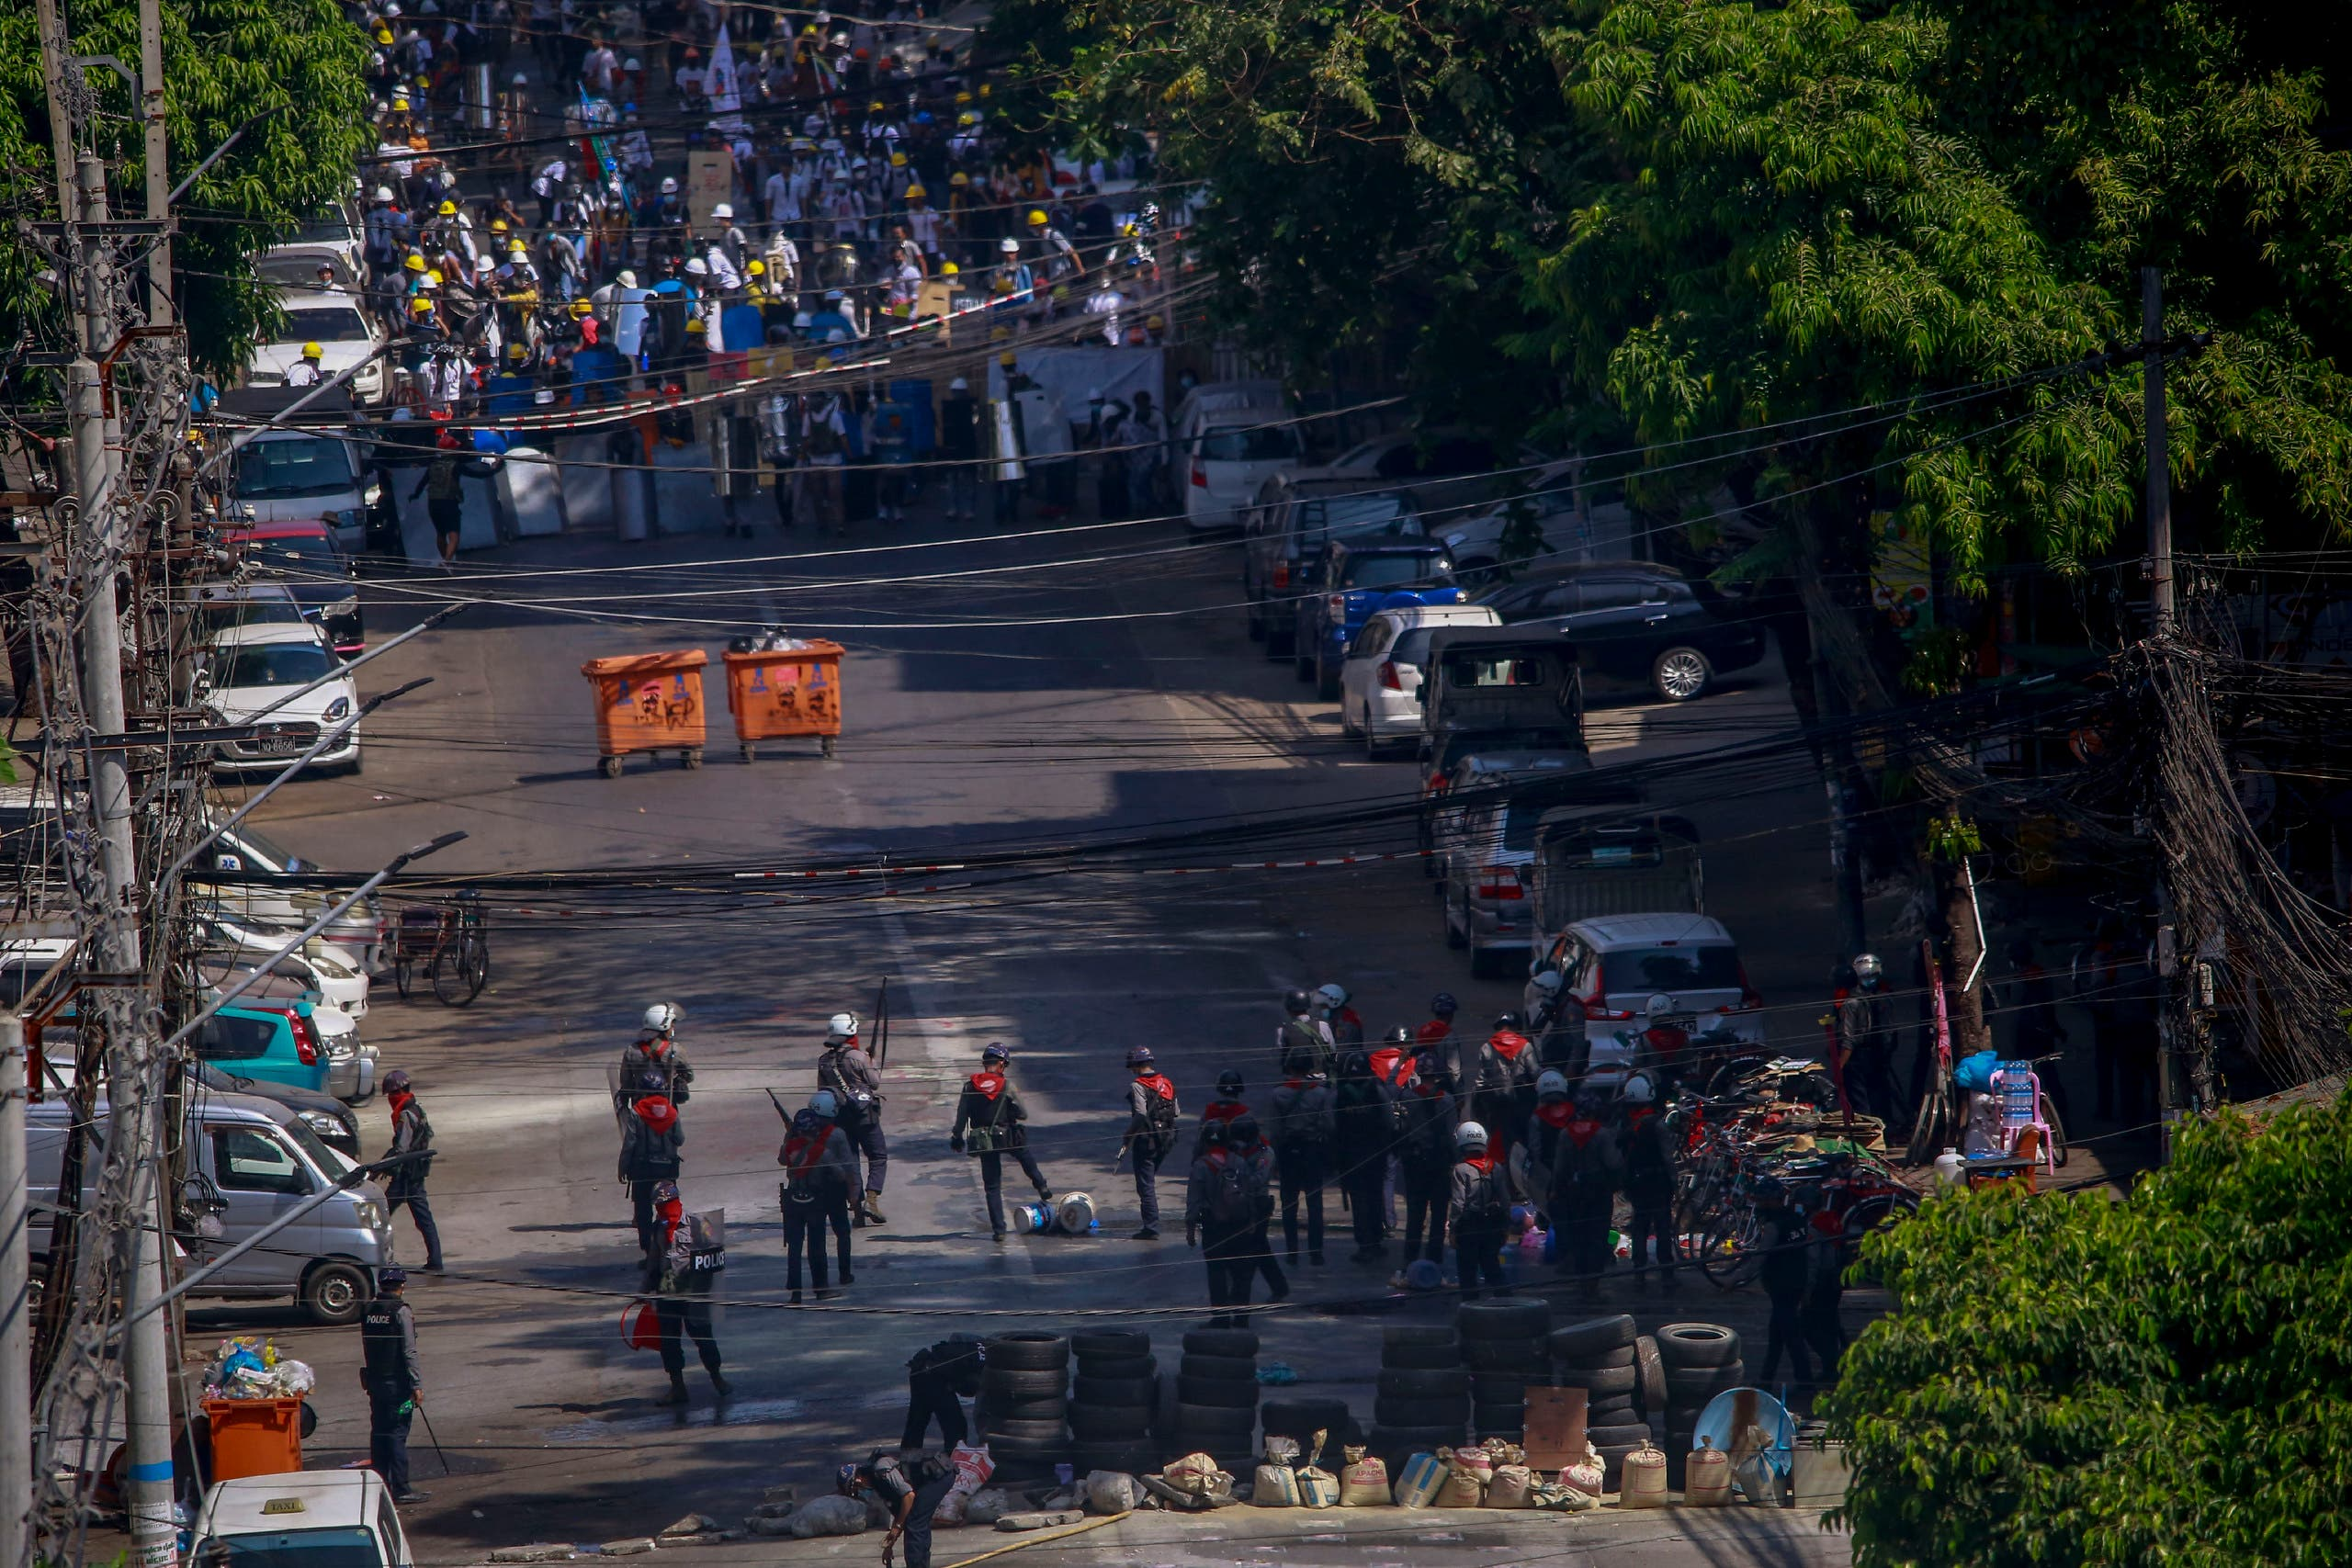 Anti-coup protesters standing behind barricades standoff with a group of police in Yangon, Myanmar Thursday, March 4, 2021. (AP)